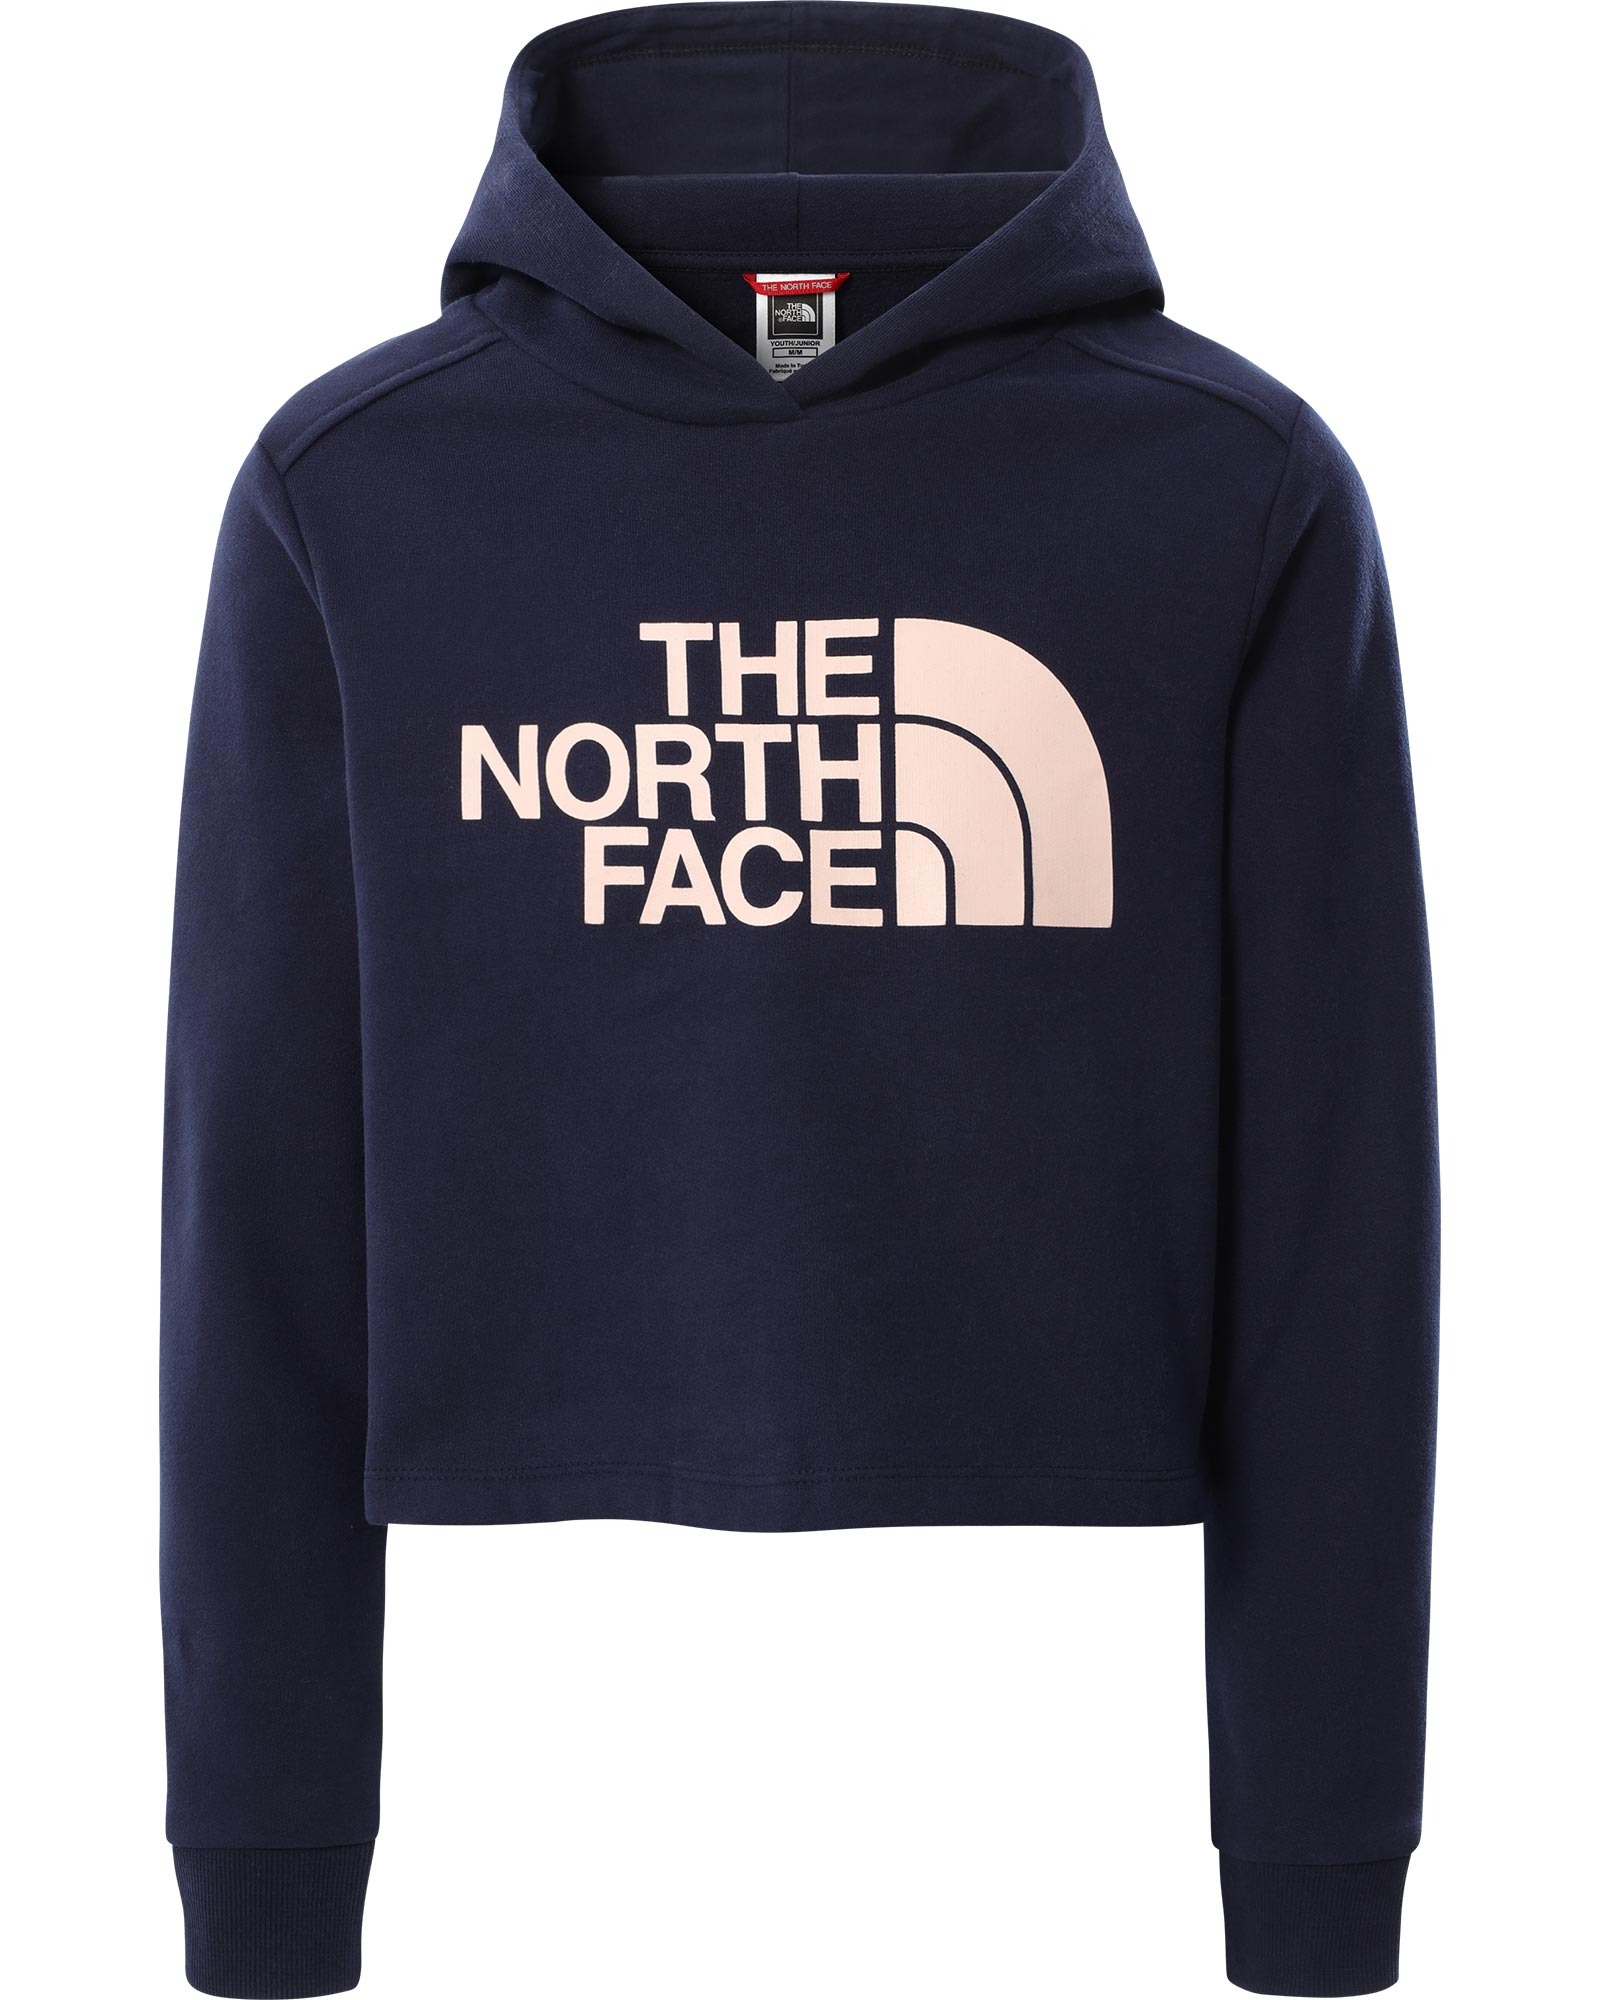 The North Face Girls' Drew Peak Cropped P/O Hoodie XL 0